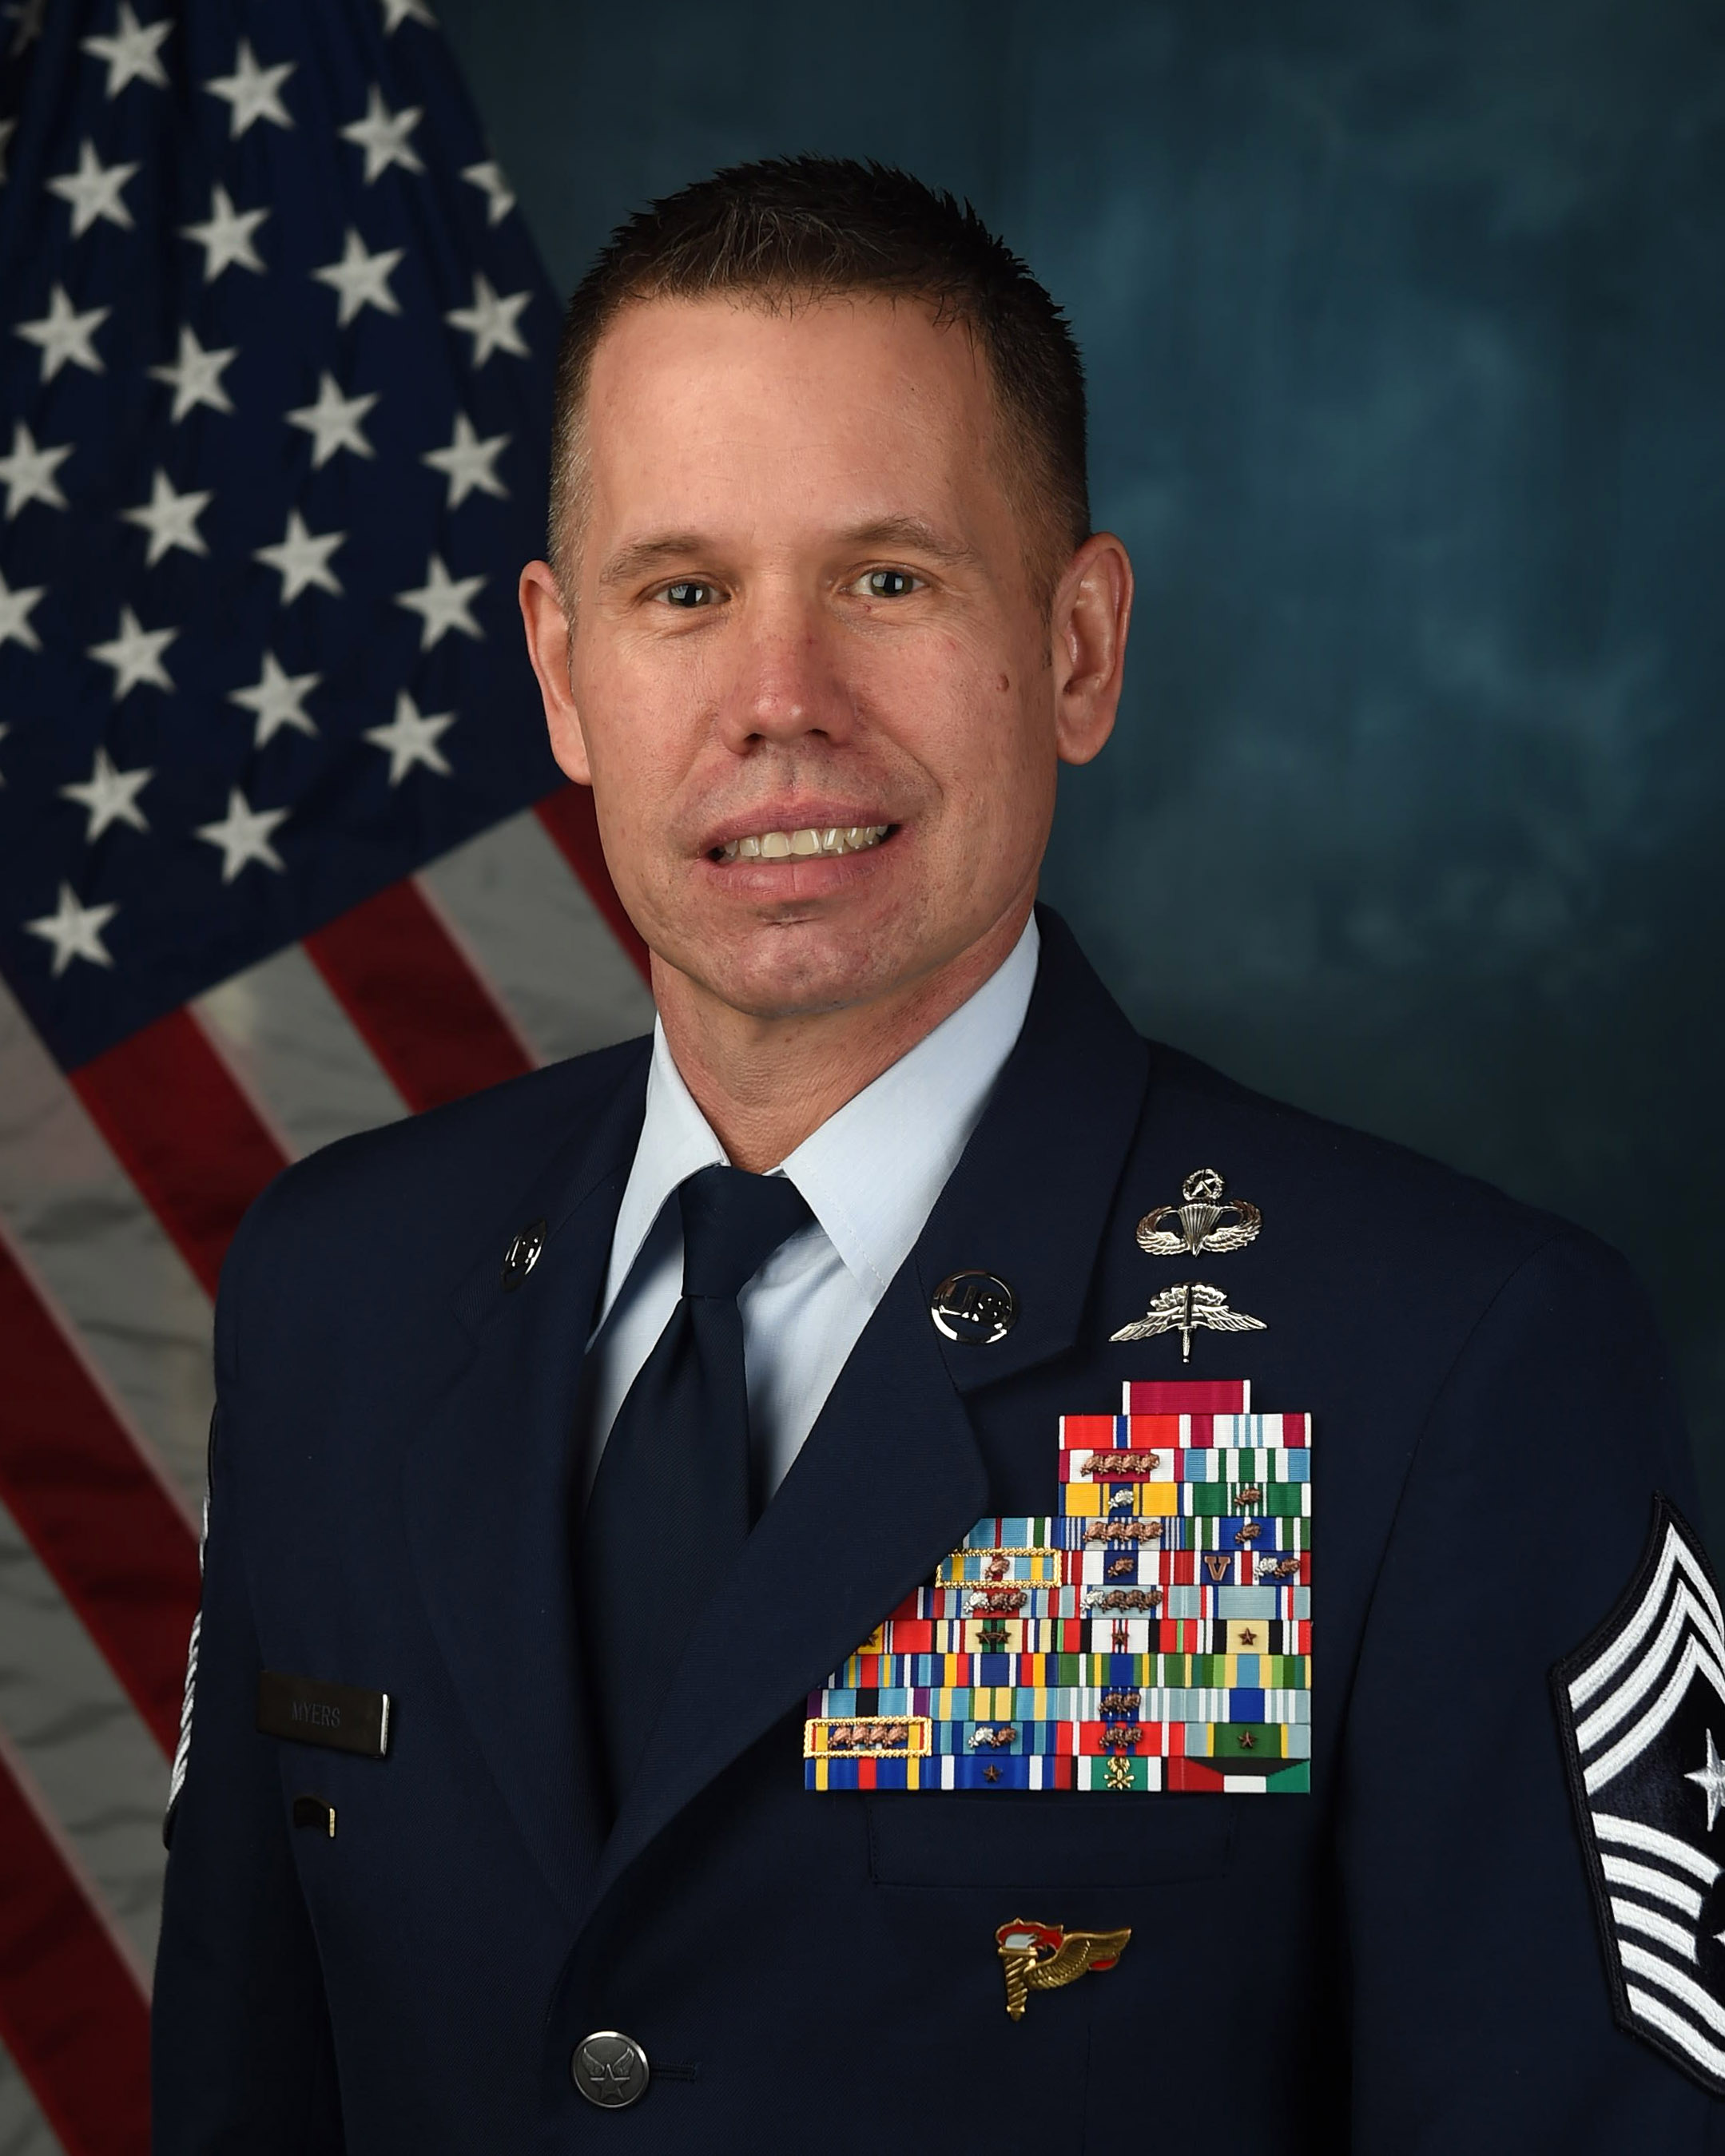 scott air force base black dating site For biography changes and updates please send an unencrypted e-mail to air force biographies from a mil e-mail address scott air force base, ill.